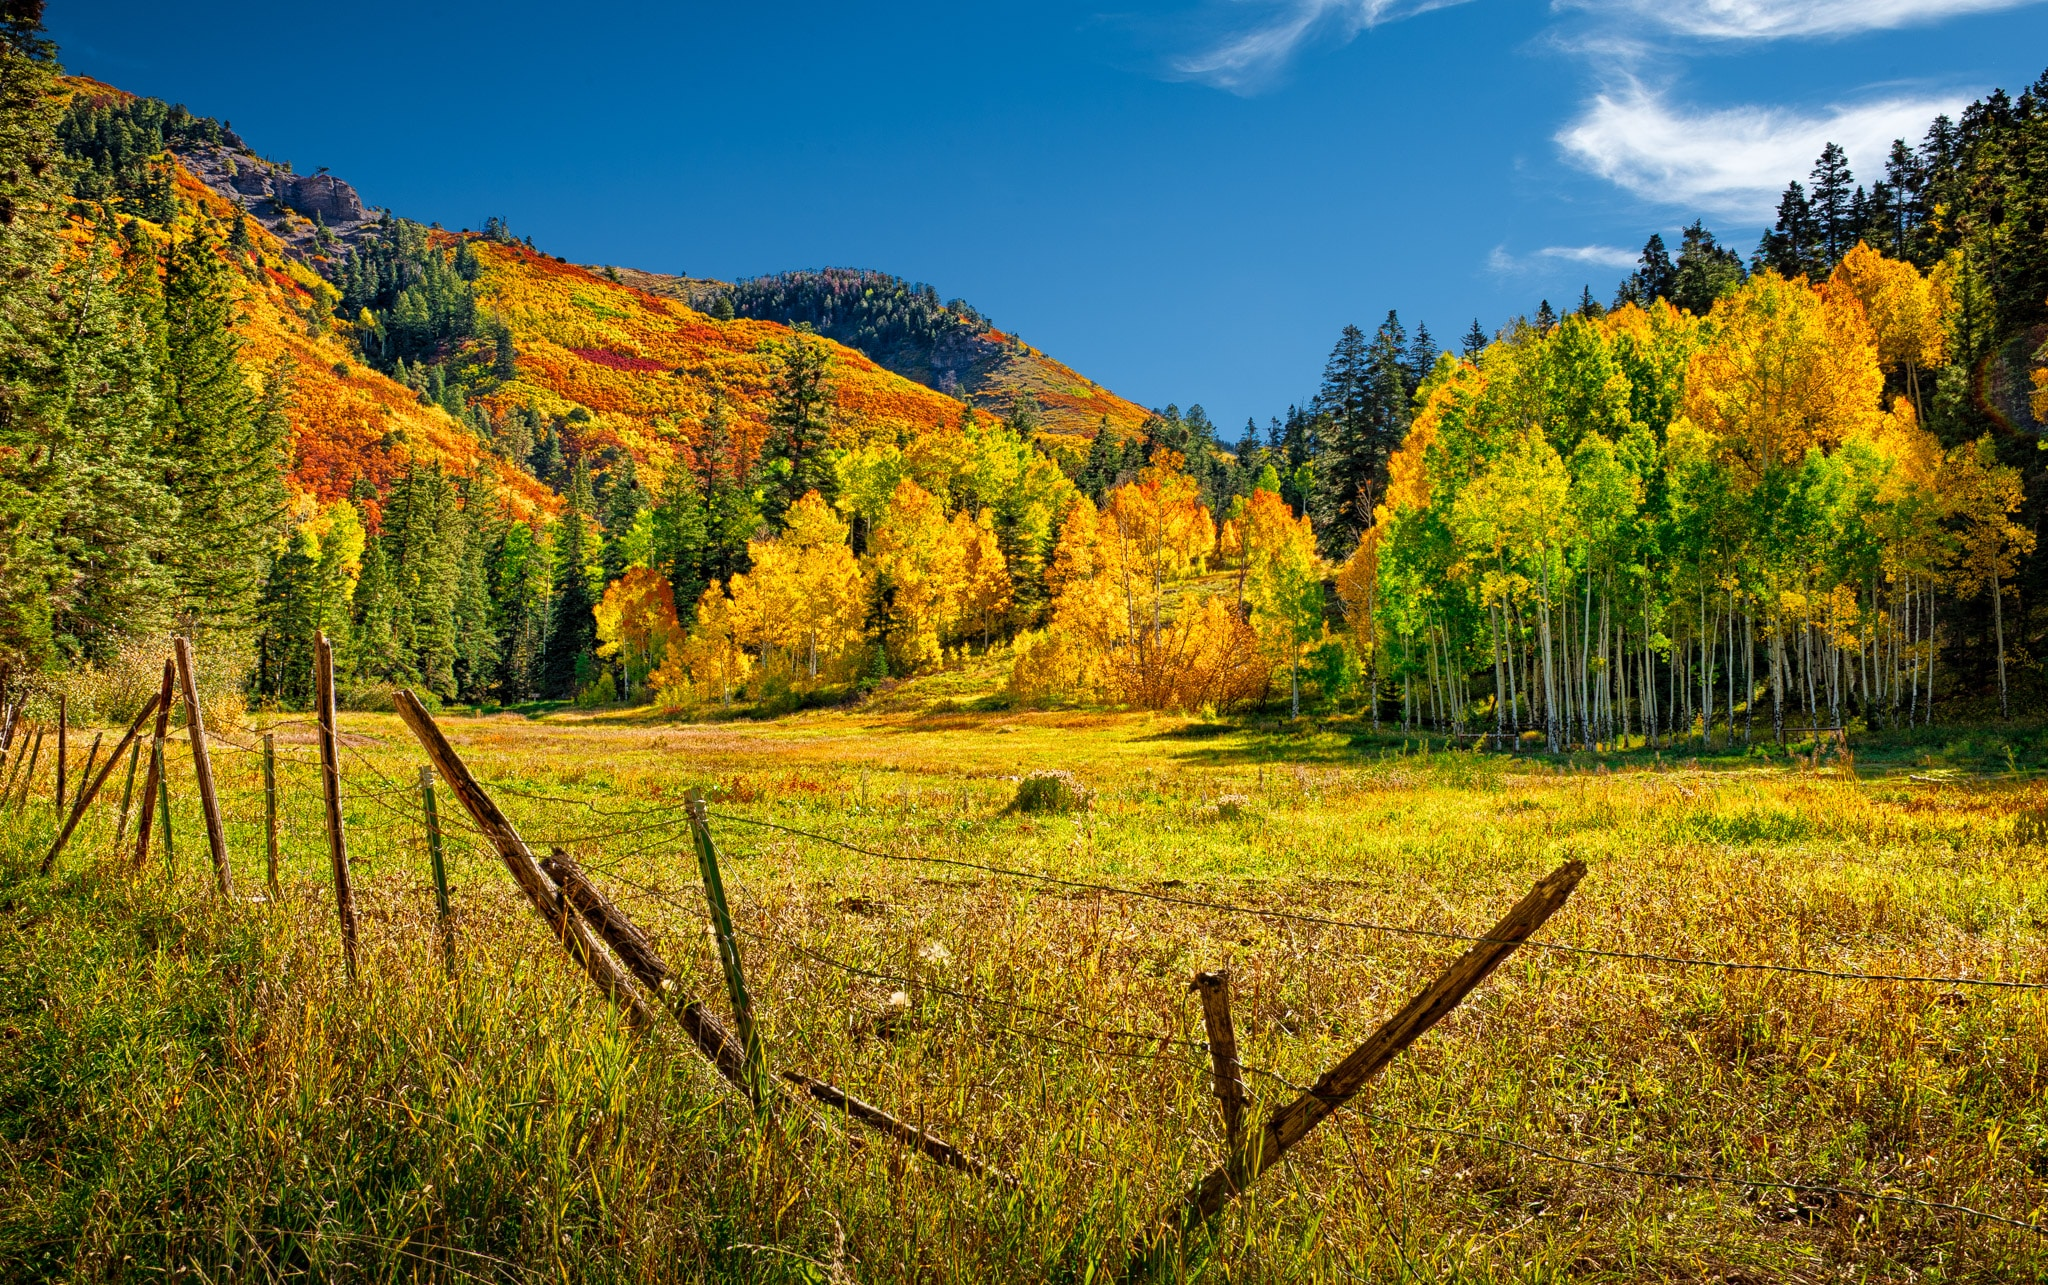 A mountain pasture is surrounded by autumn-colored Gambel oaks and aspens as seen from Ouray CR 14a near Ouray, Colorado, off US 550.